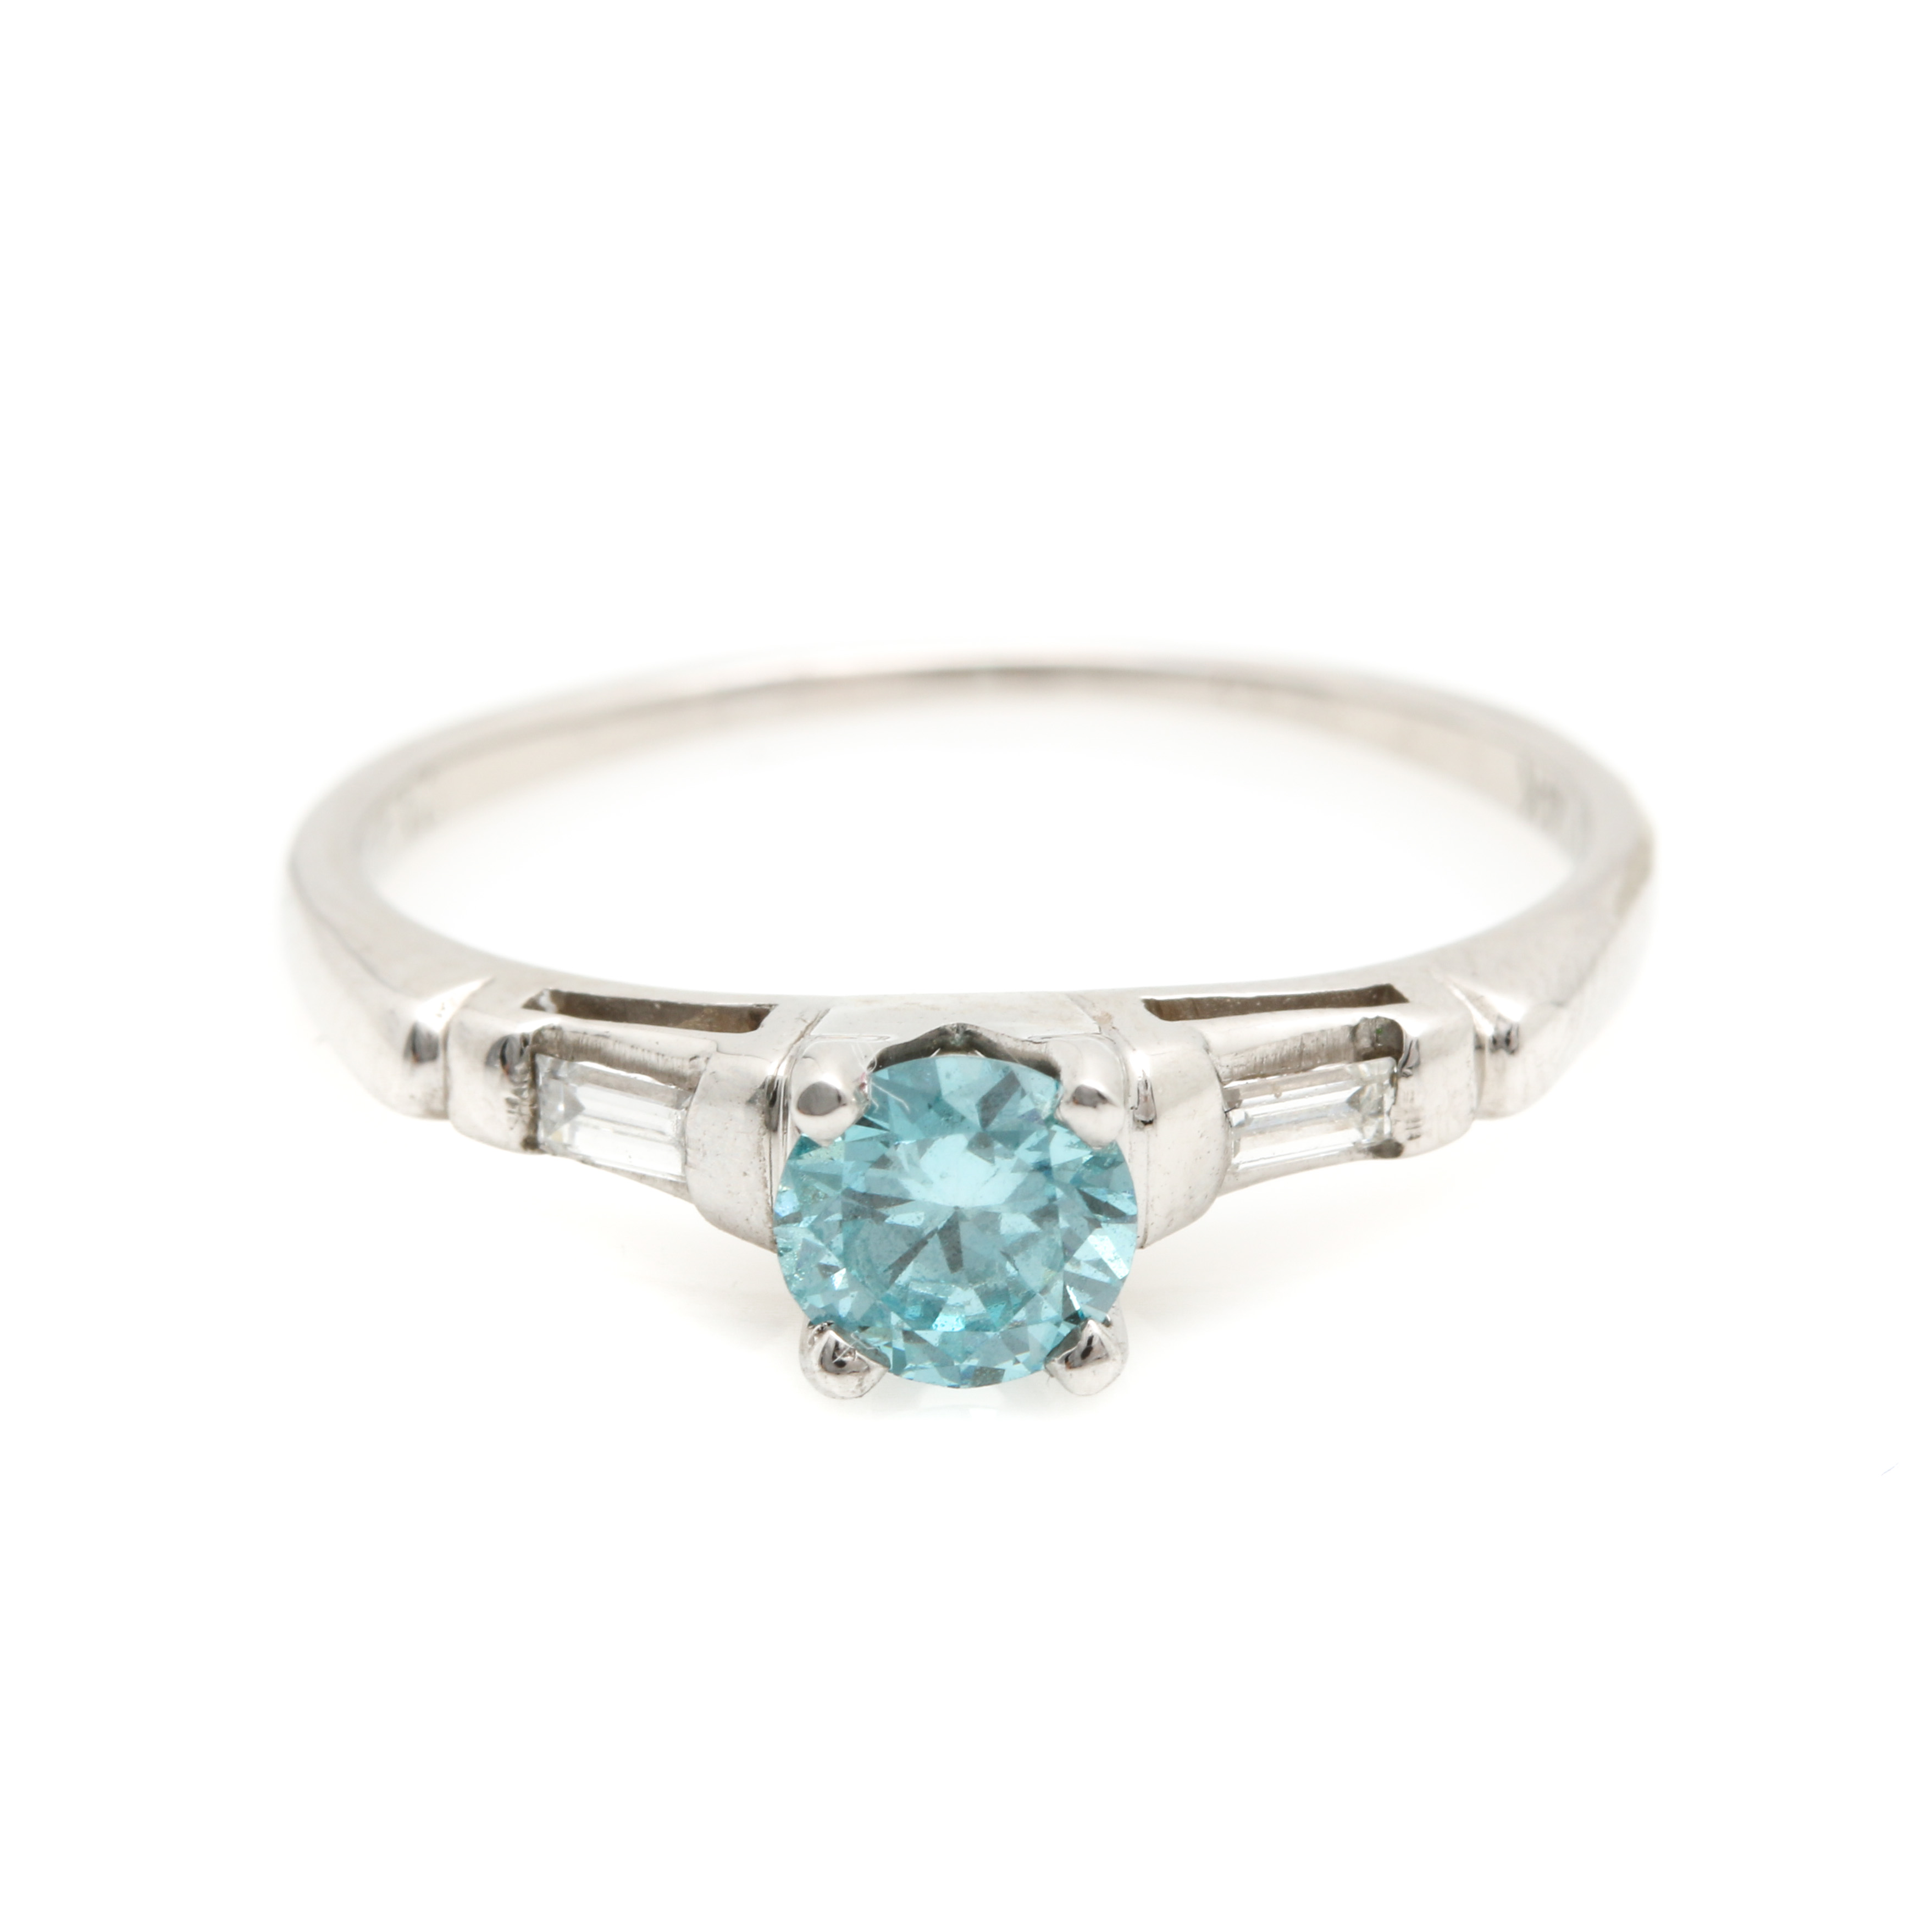 Image Result For Diamond Rings With Baguette Shoulders